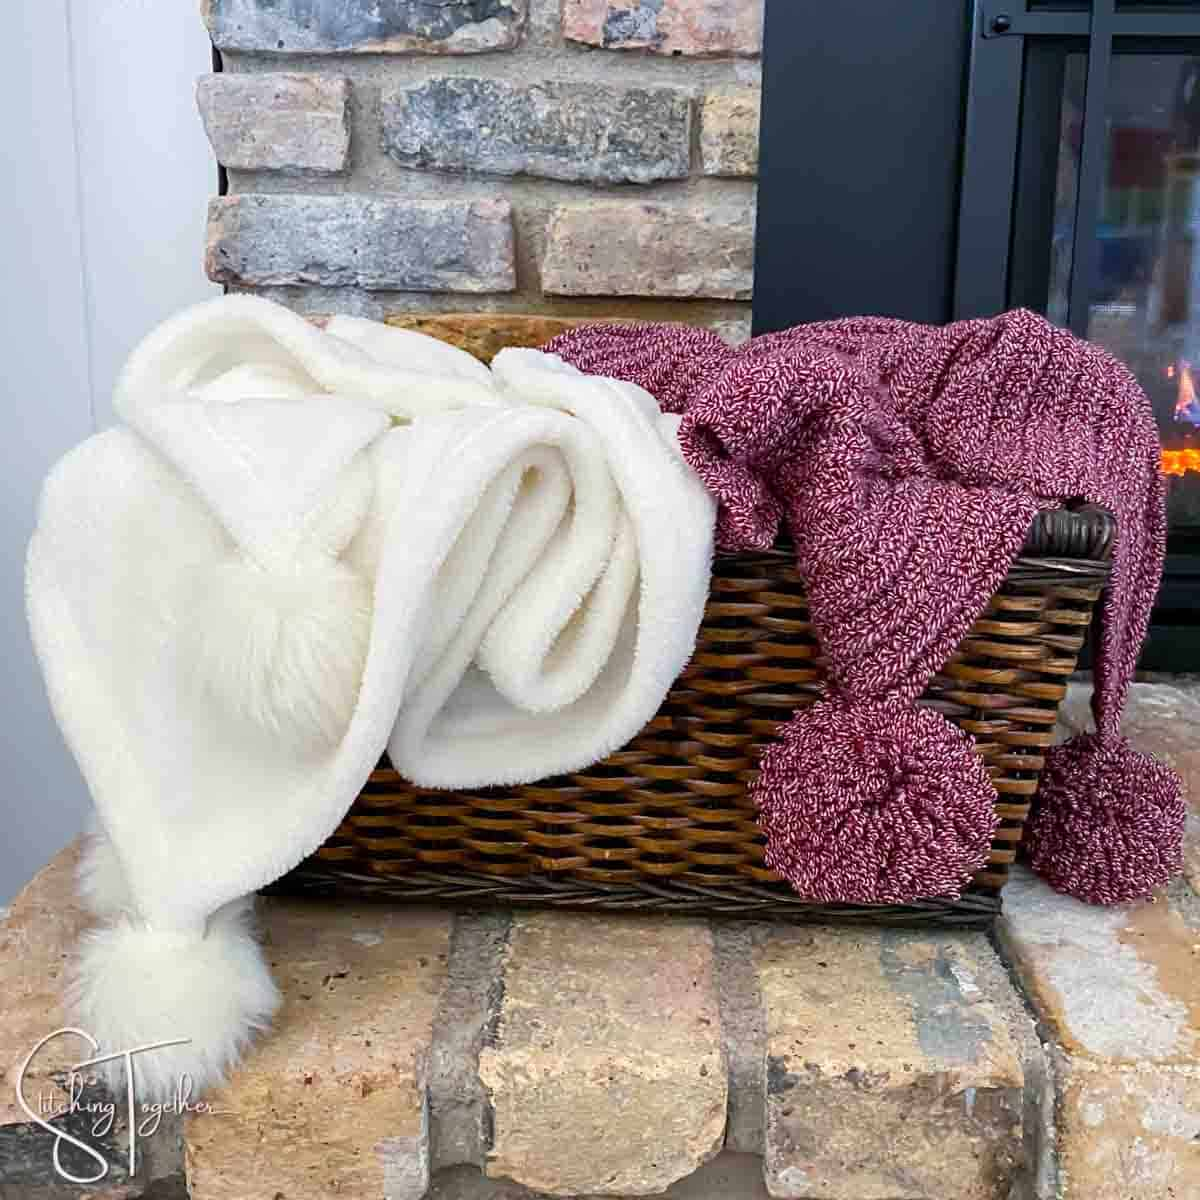 a white blanket and a red crochet christmas blanket both with pom poms in a basket